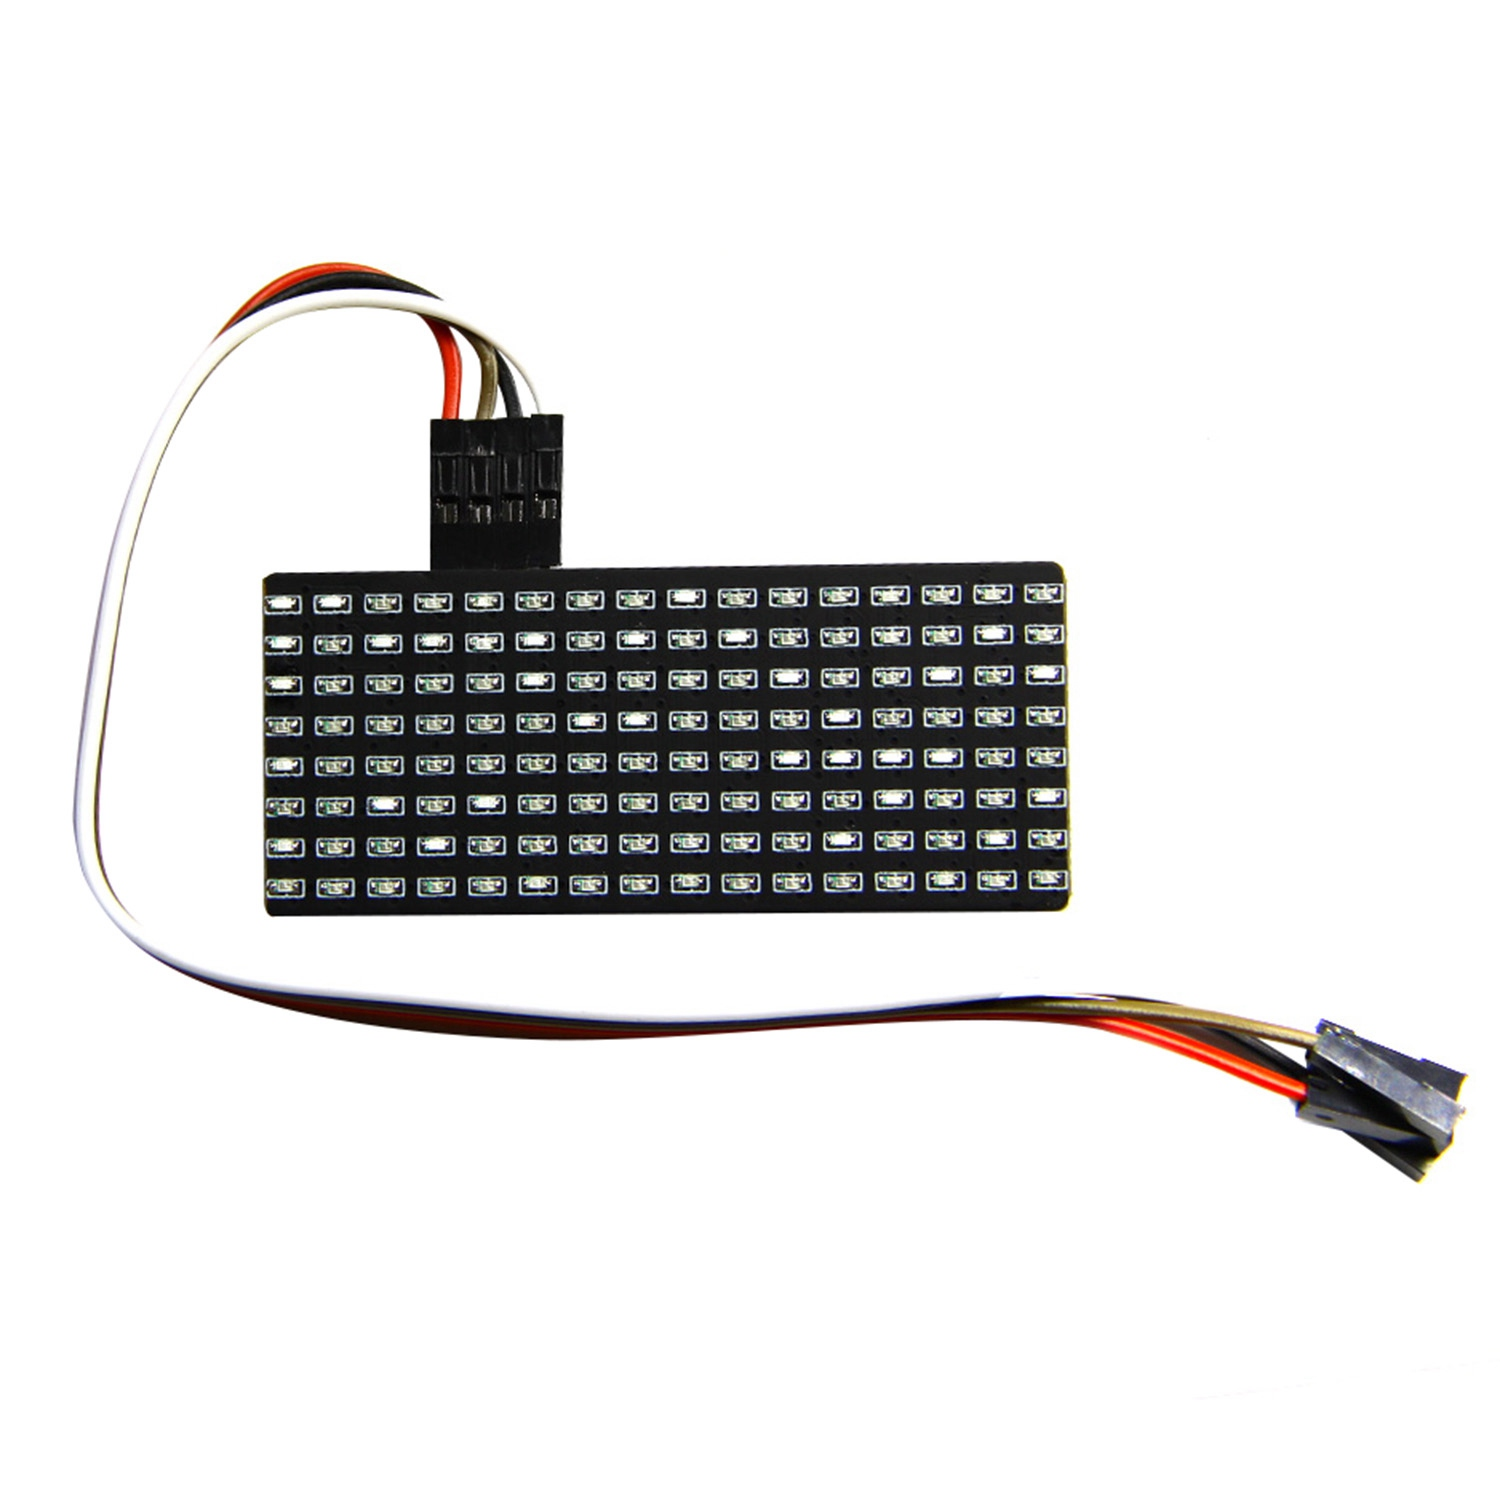 Smart Home Methodical Ttgo Expression Panel Blue Led Display Board Module For Esp32 Esp8266 For Arduino For Mircobit Factory Direct Selling Price